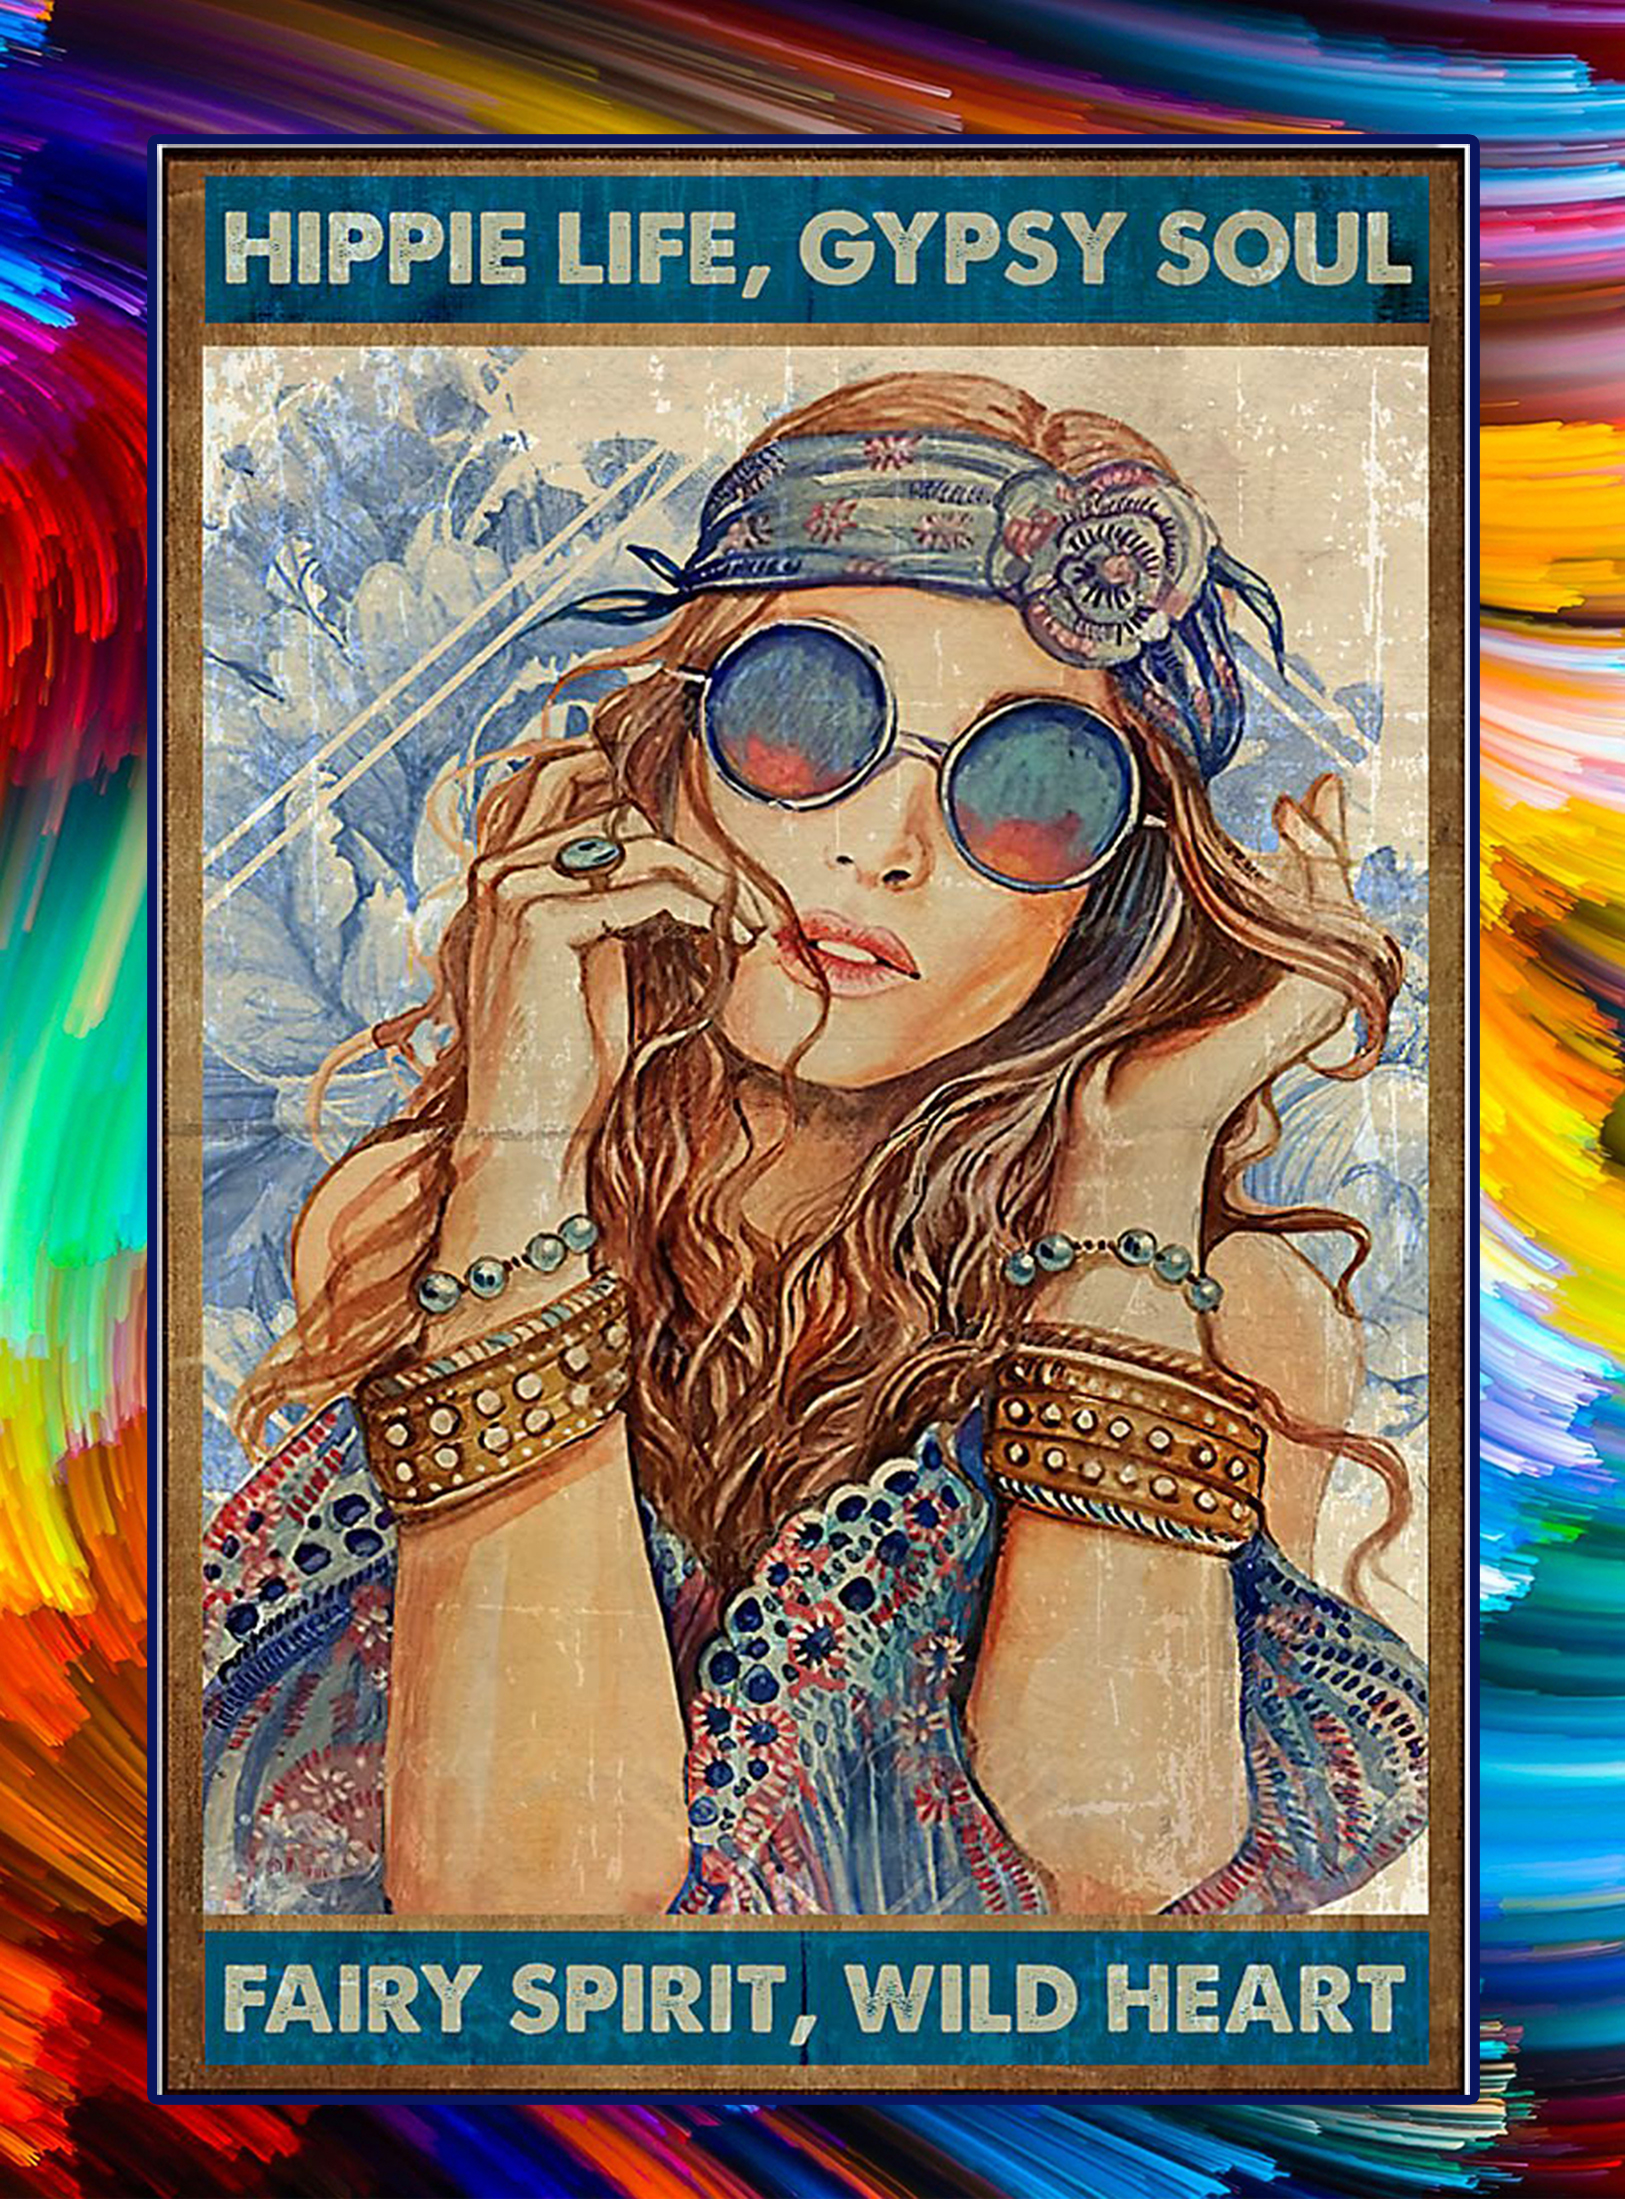 Girl Hippie life gypsy soul fairy spirit wild heart poster - A2